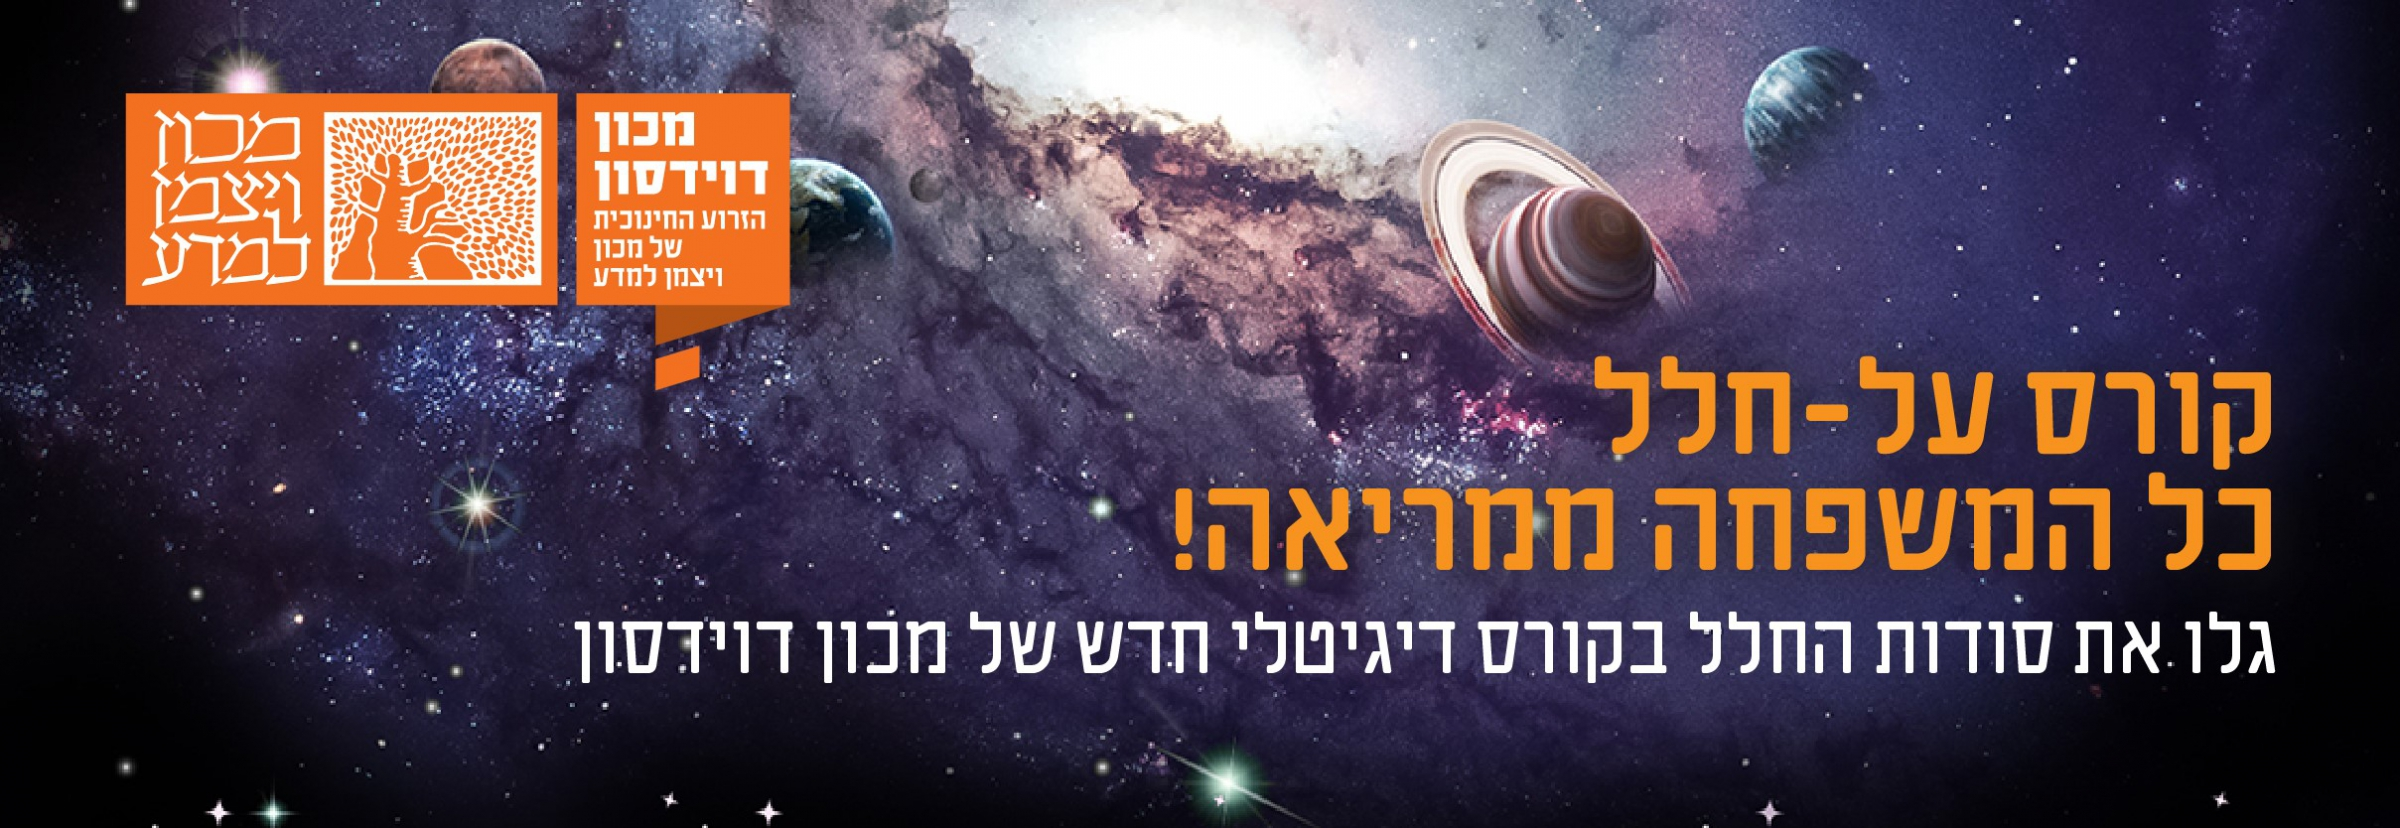 https://davidson.weizmann.ac.il/programs/spaceandbeyond